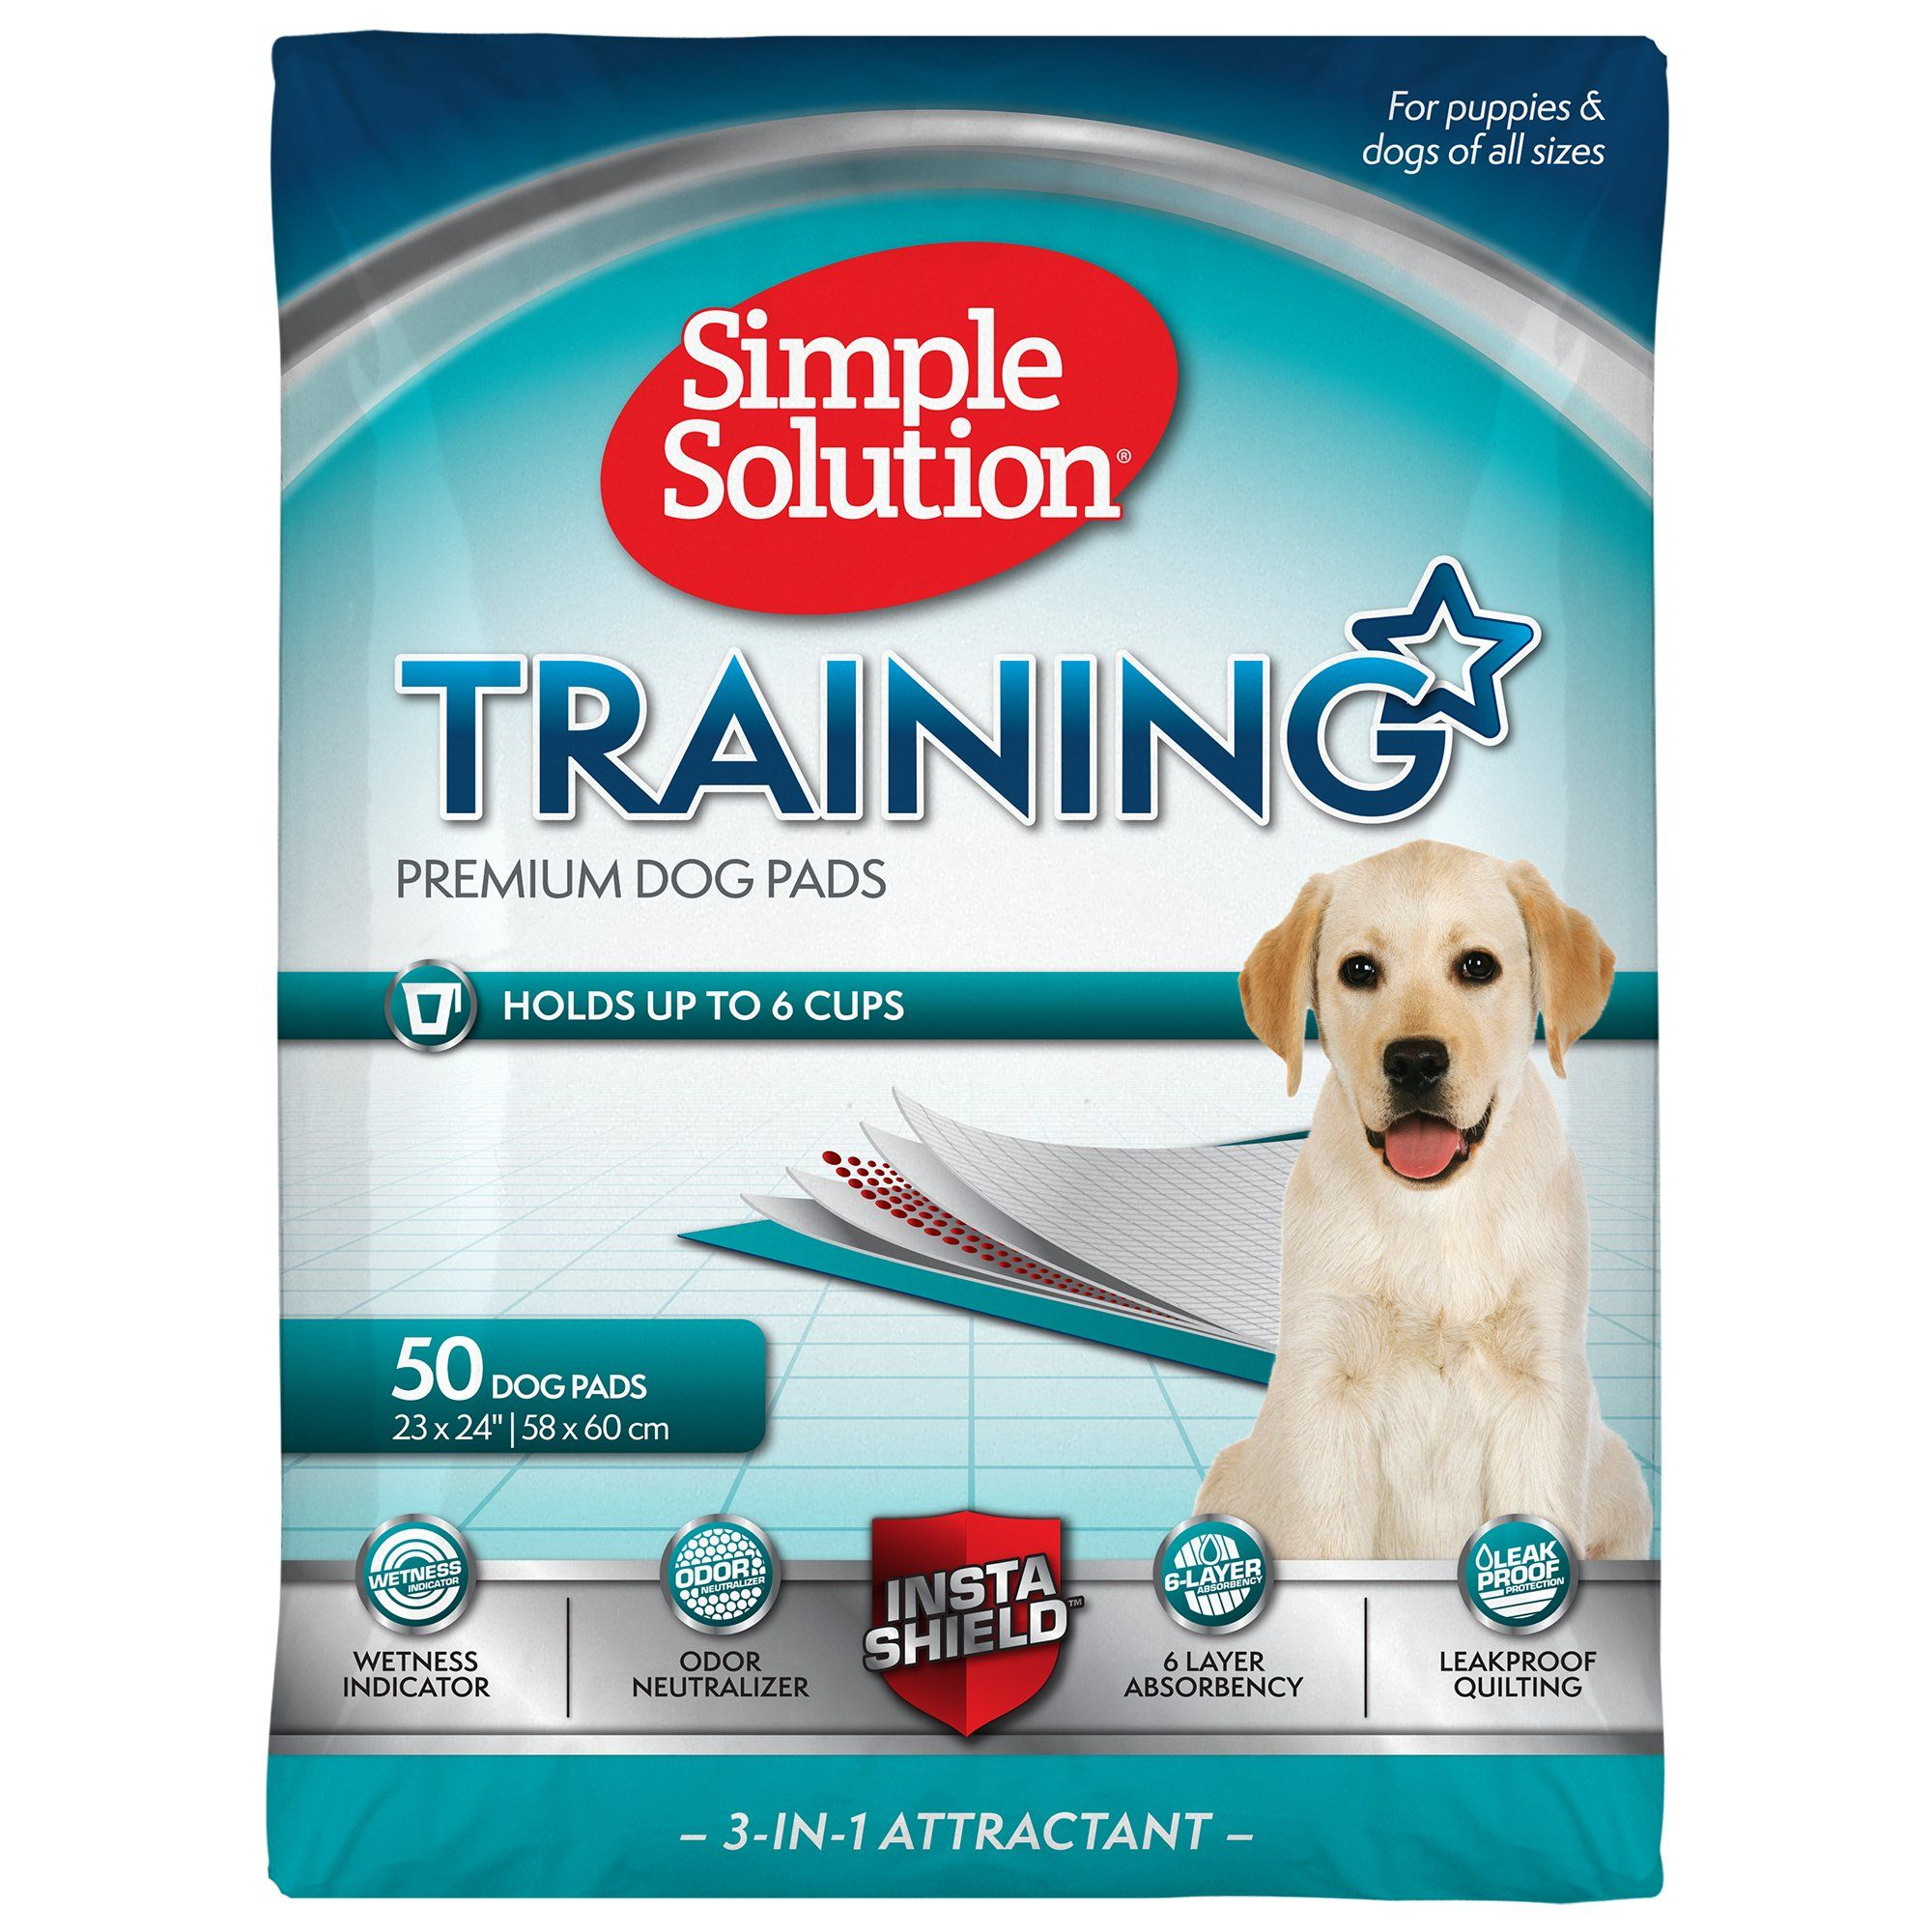 Simple Solution Dog Training Pads Count Of 50 50 Ct Puppy Pads